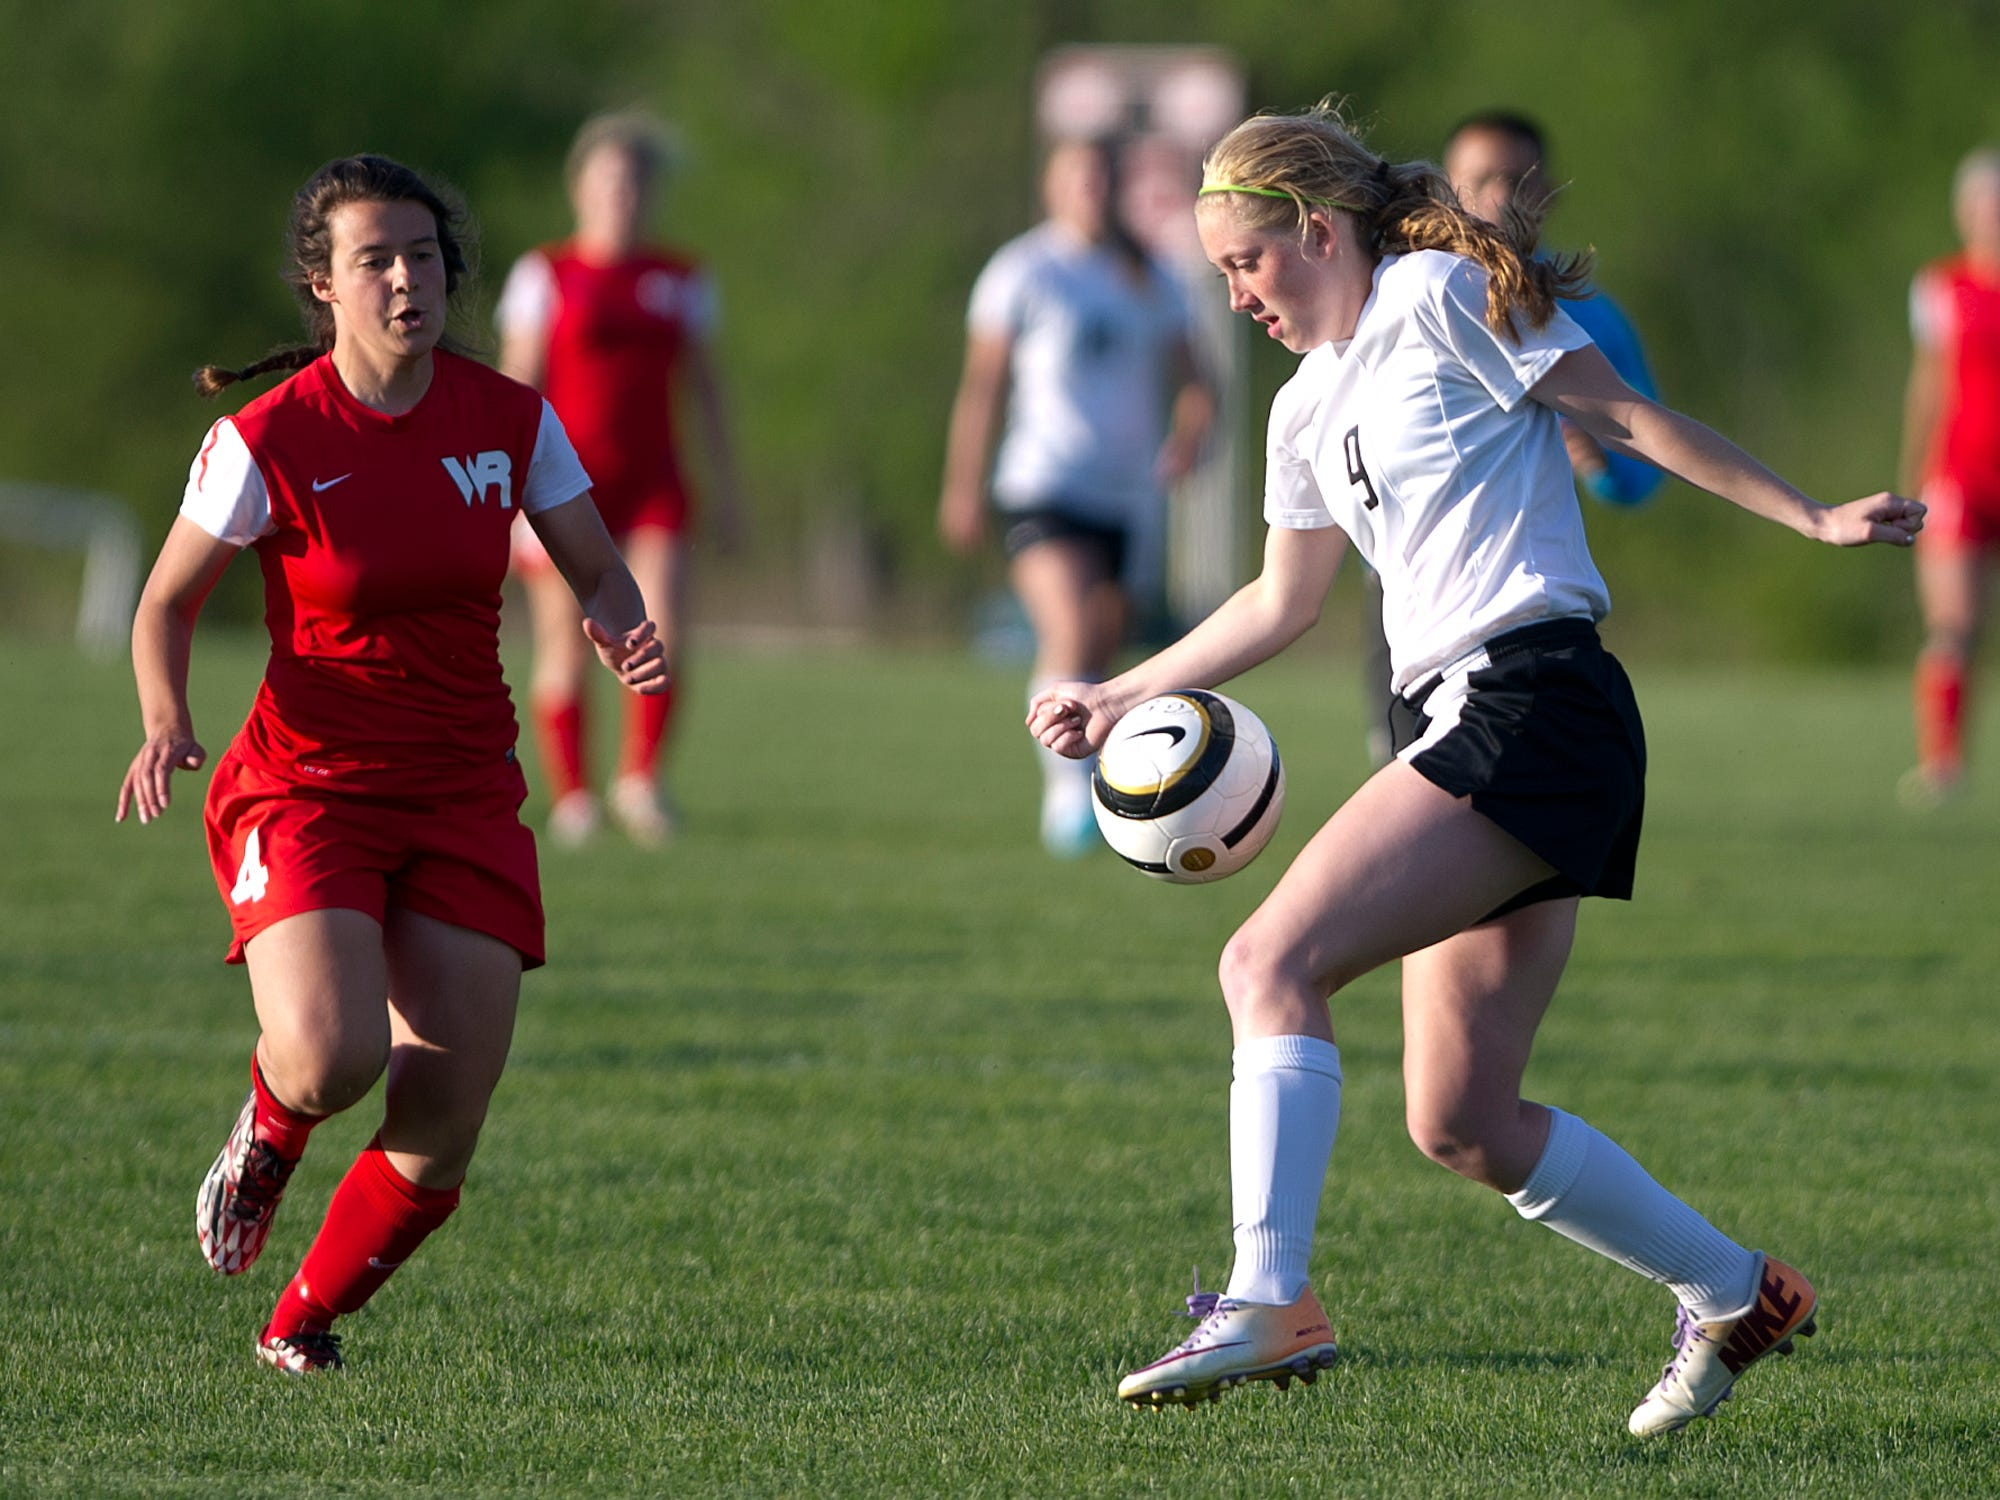 Wisconsin Rapids' Katie Kiiskila, left, against Stevens Point Area Senior High's Courtney Milkowski during Thursday's Wisconsin Valley Conference soccer game at the Portage County Youth Soccer Complex in Stevens Point.